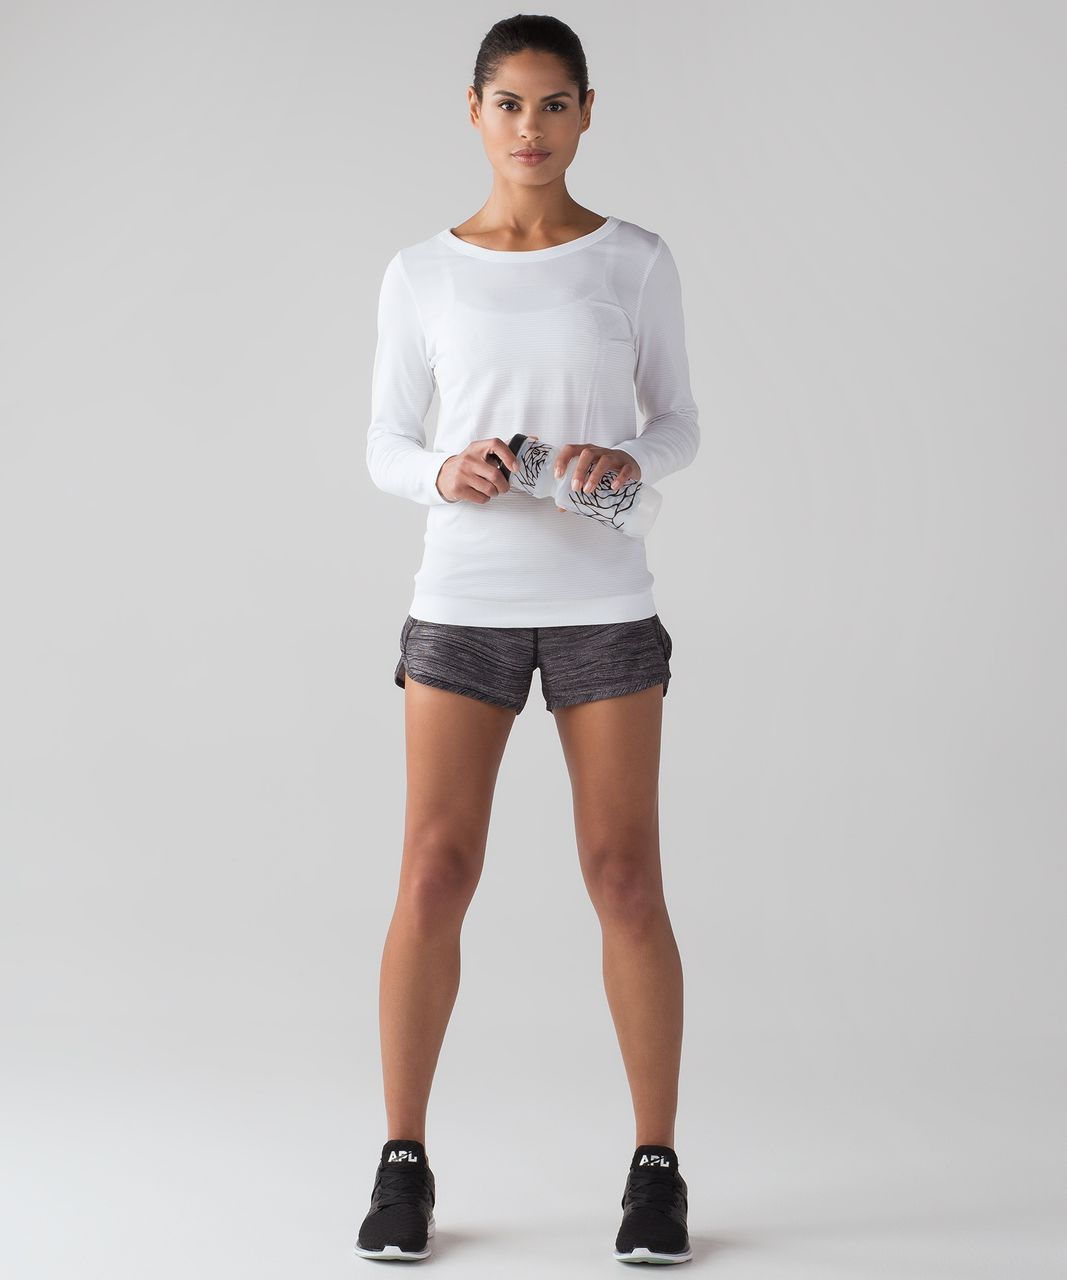 5684a7fd79497 Lululemon Swiftly Tech Long Sleeve (Breeze) *Relaxed Fit - White ...